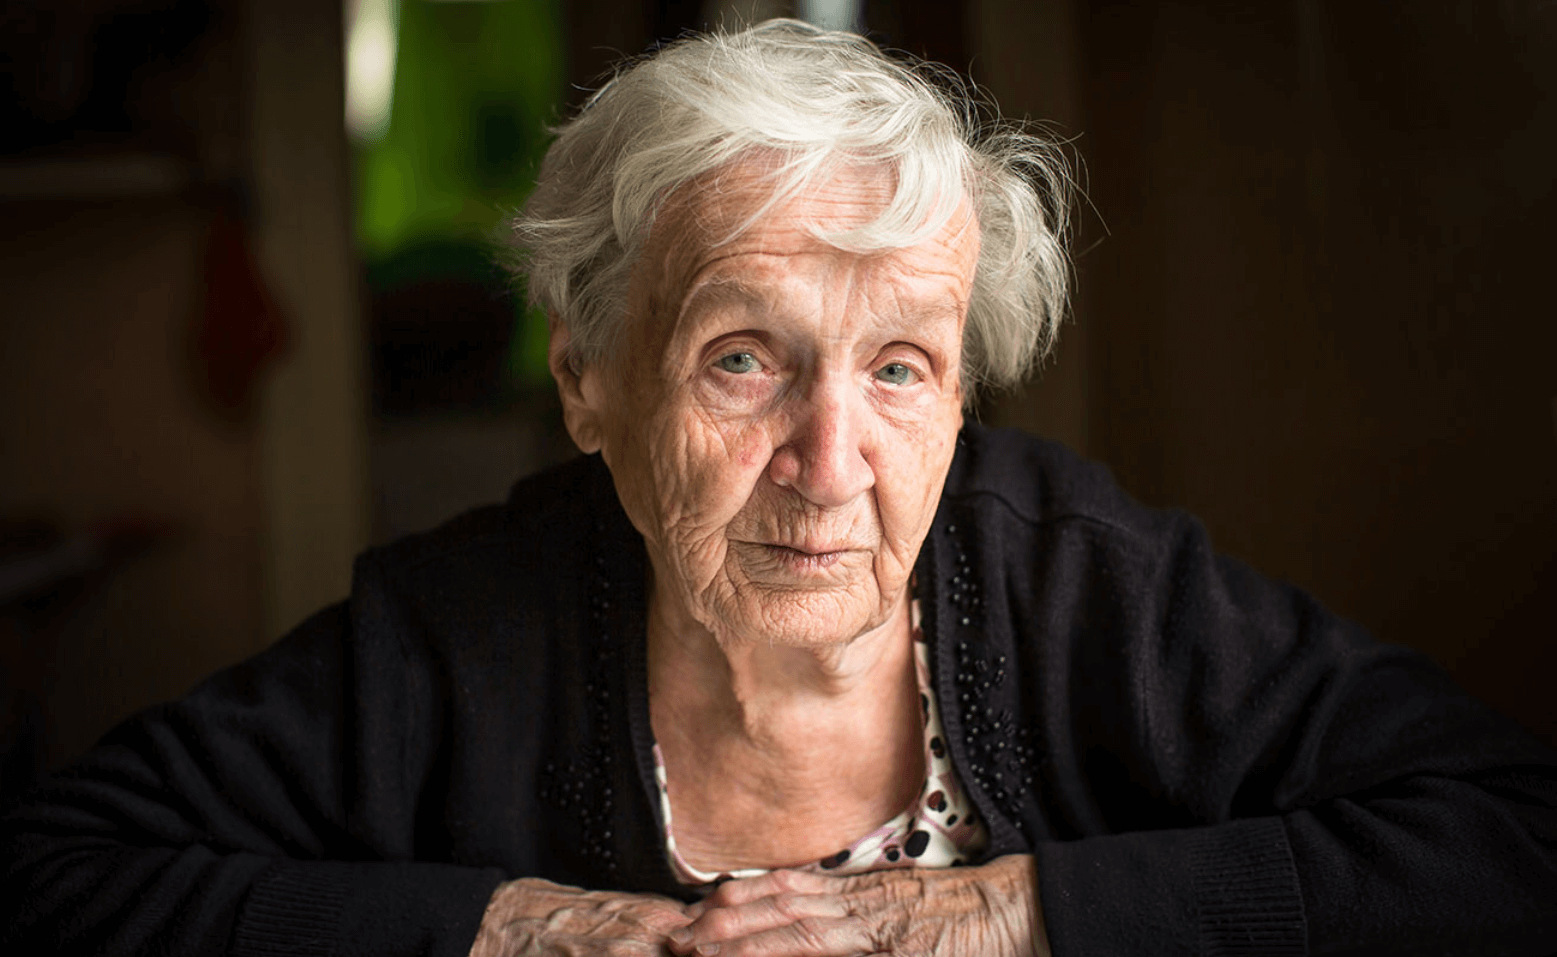 OLD AGE AND DEMENTIA